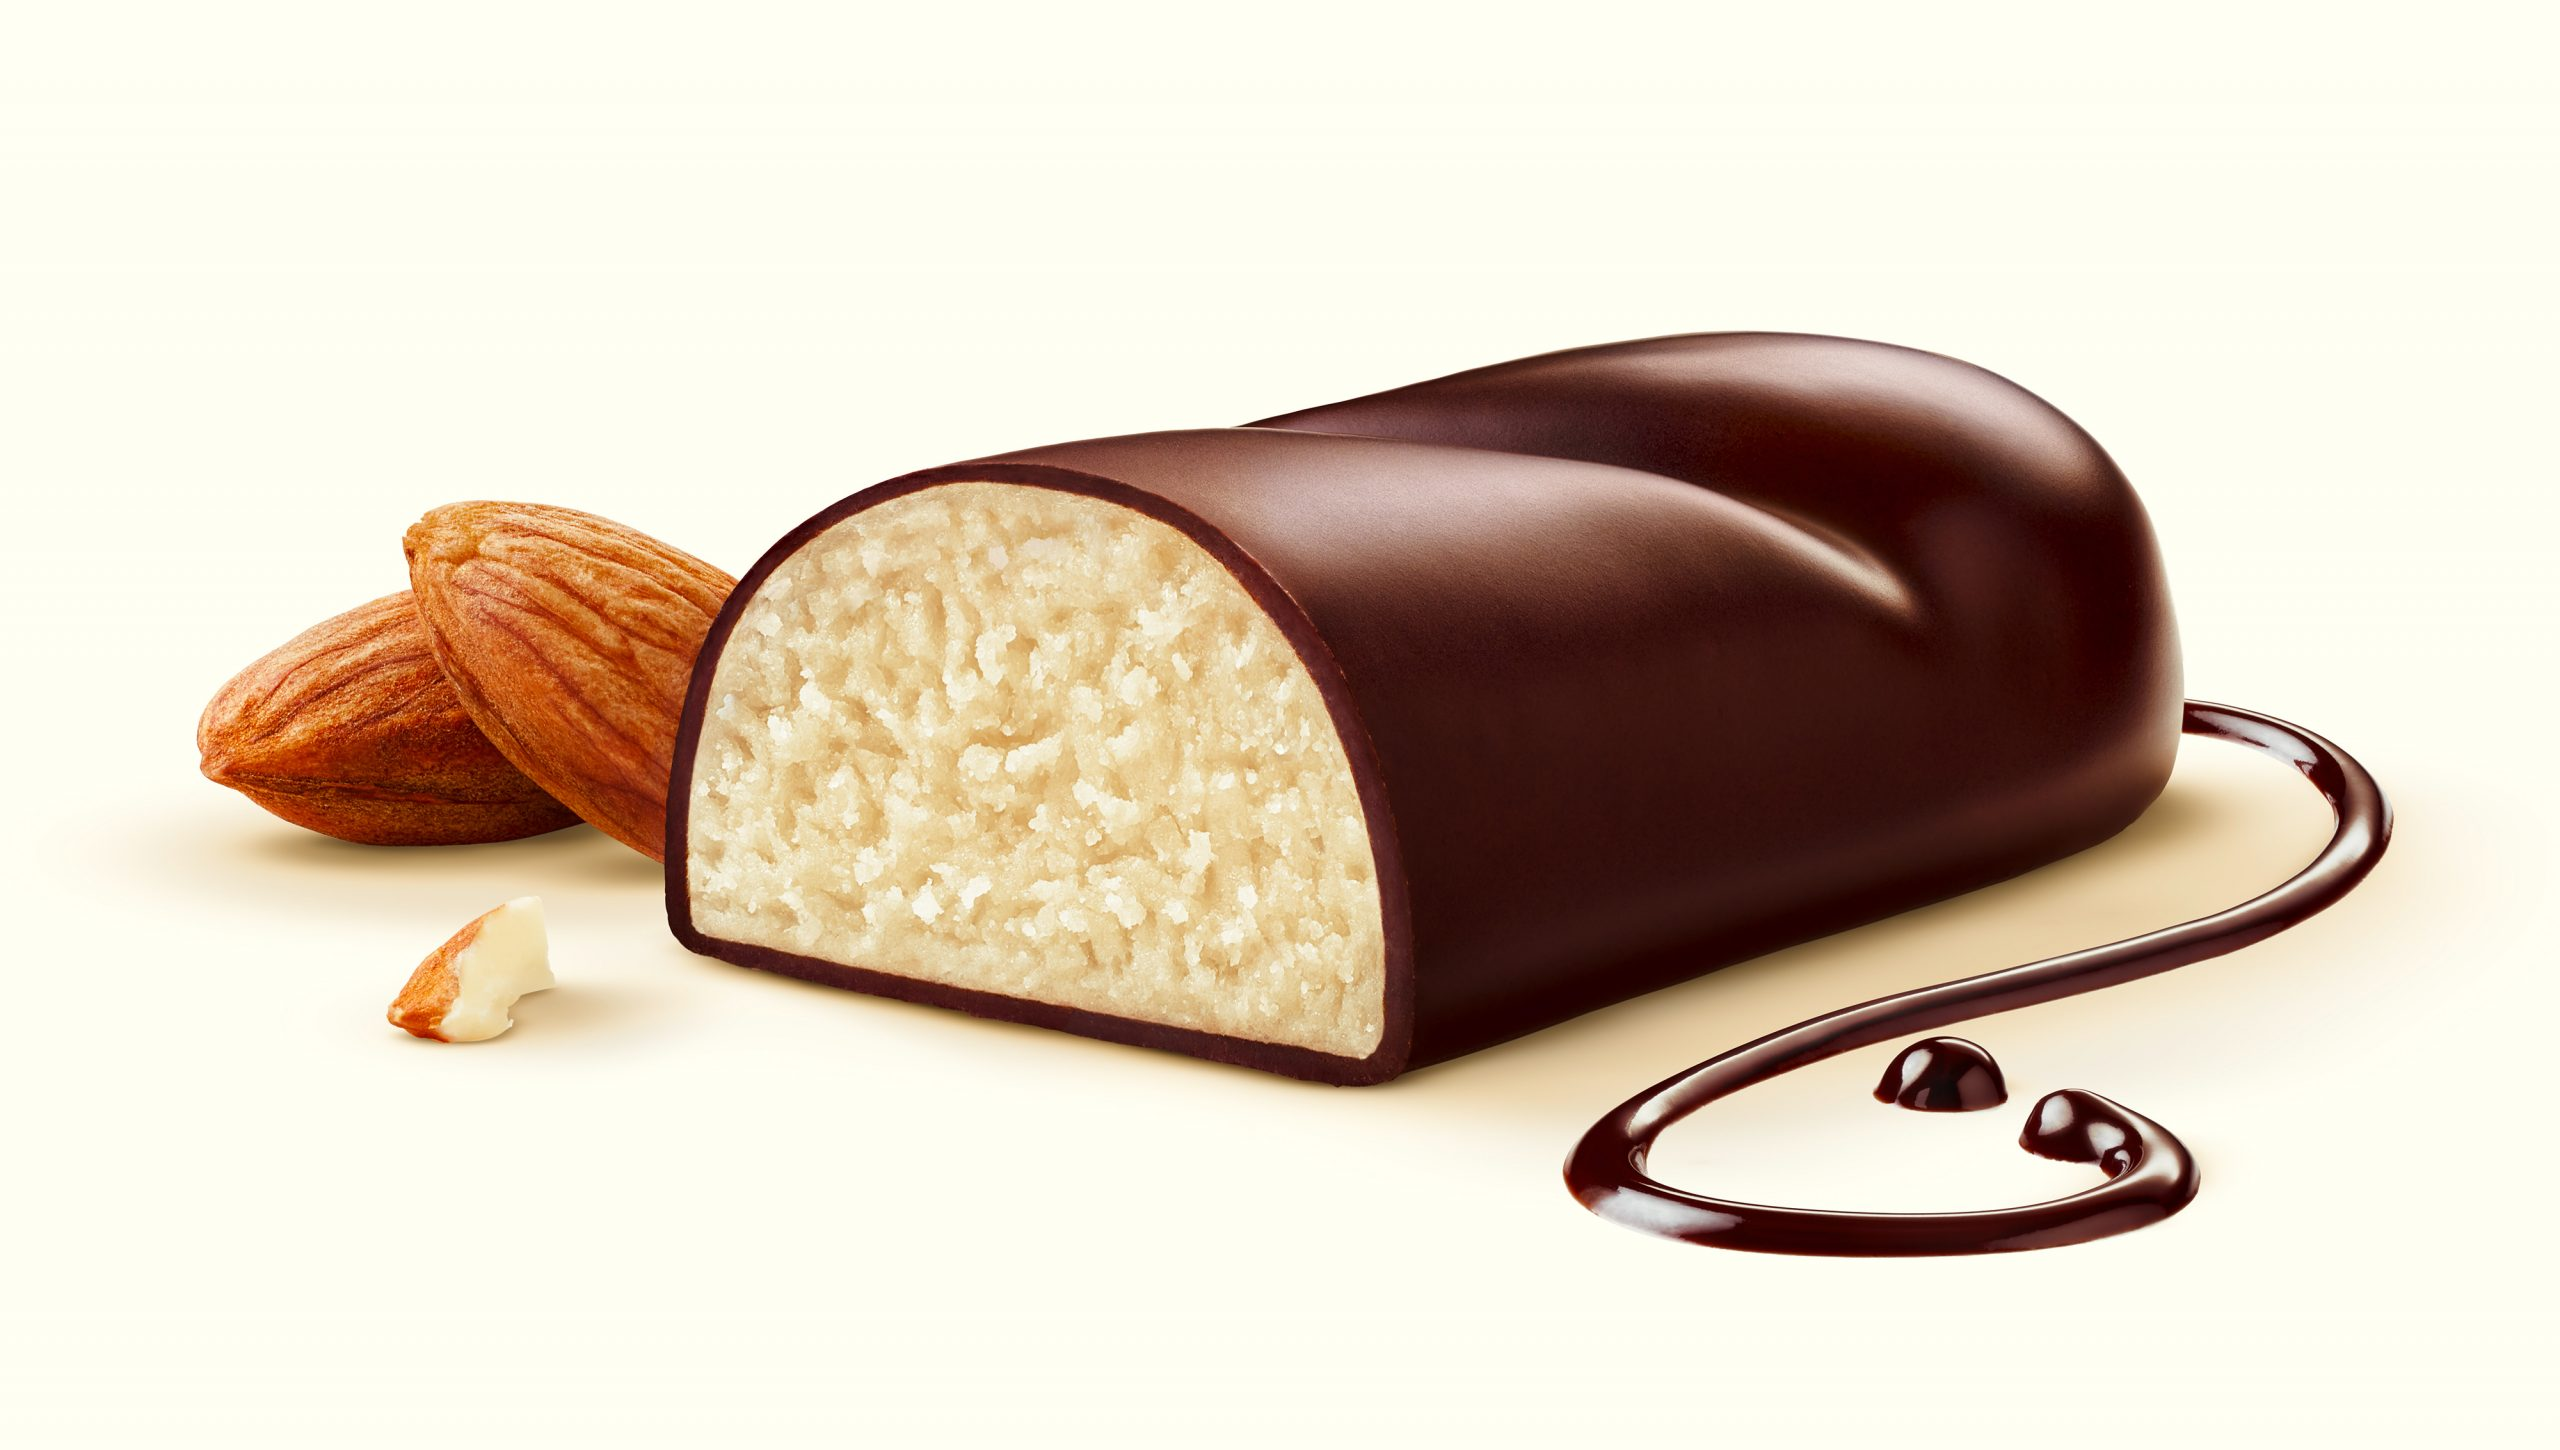 A confectionery marzipan bread is covered with chocolate, on the beige background are fine chocolate streaks.